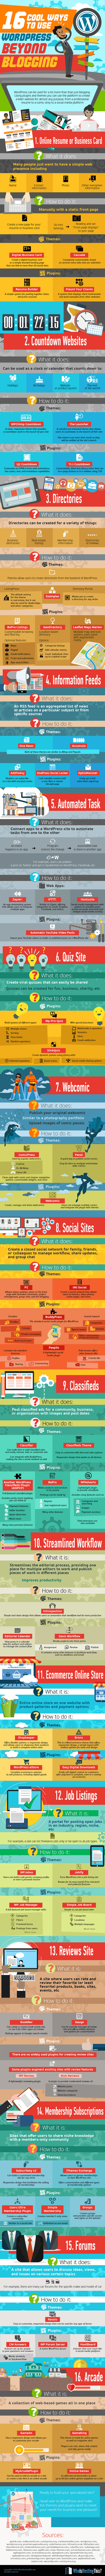 16 Cool Ideas How to Use WordPress Beyond Blogging [Infographic]